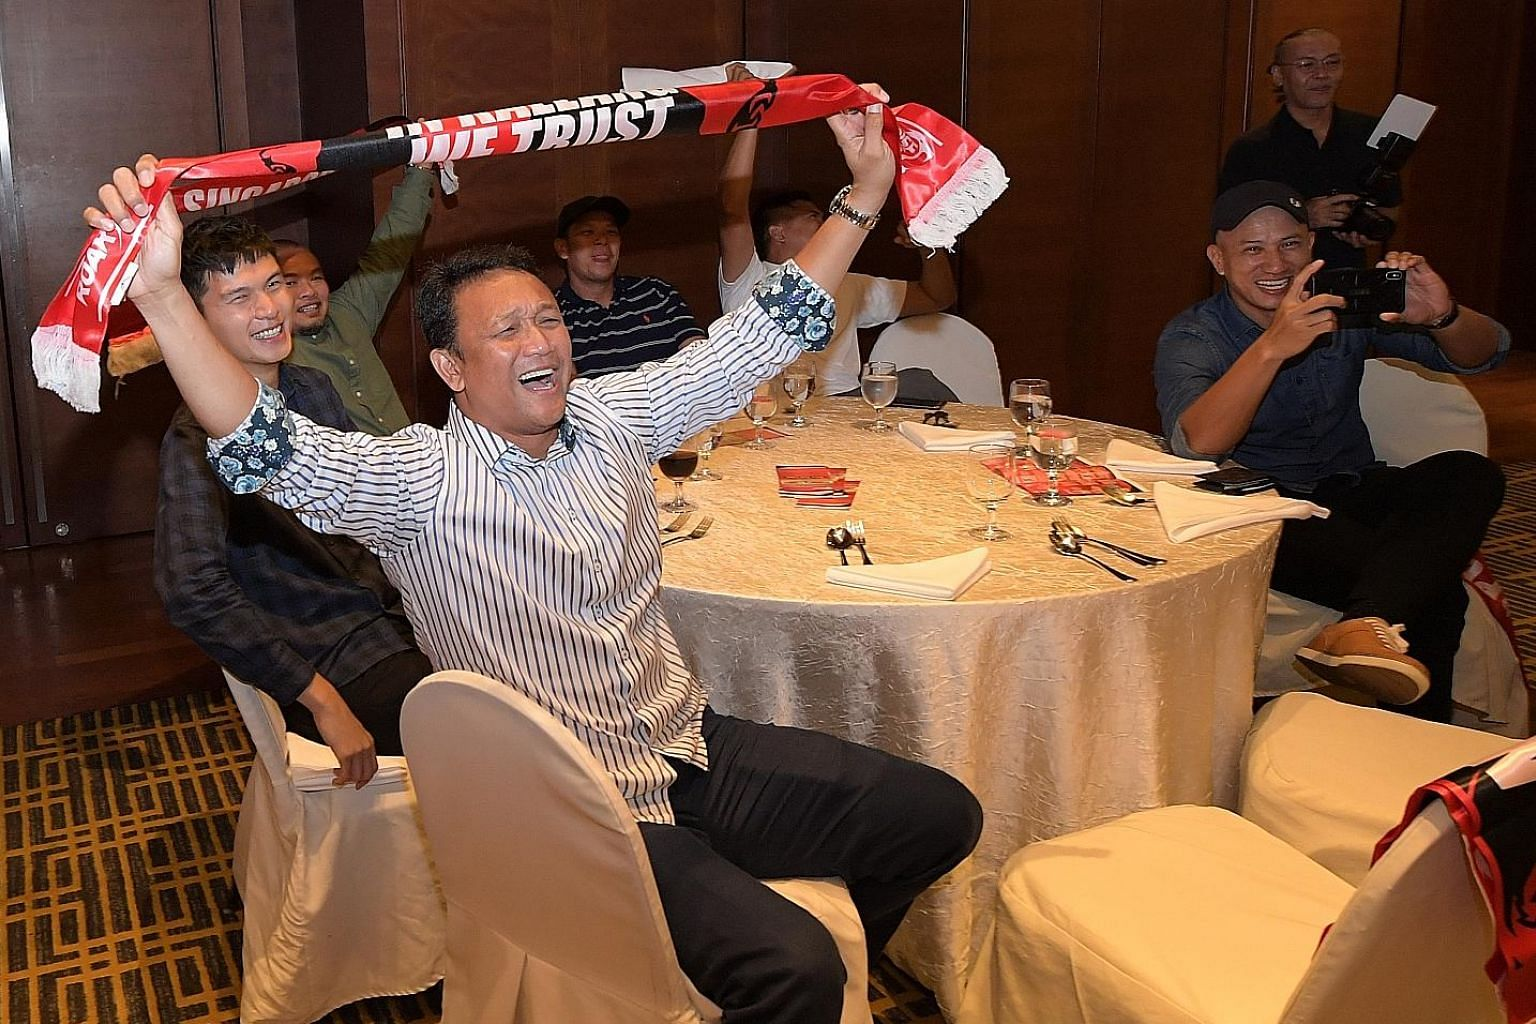 Fandi Ahmad in good spirits at last night's FAS AFF Cup appreciation dinner for stakeholders at Copthorne King's Hotel. He will return to his role as the FAS' head of youth, where he will lead the Under-23s at next year's SEA Games in the Philippines